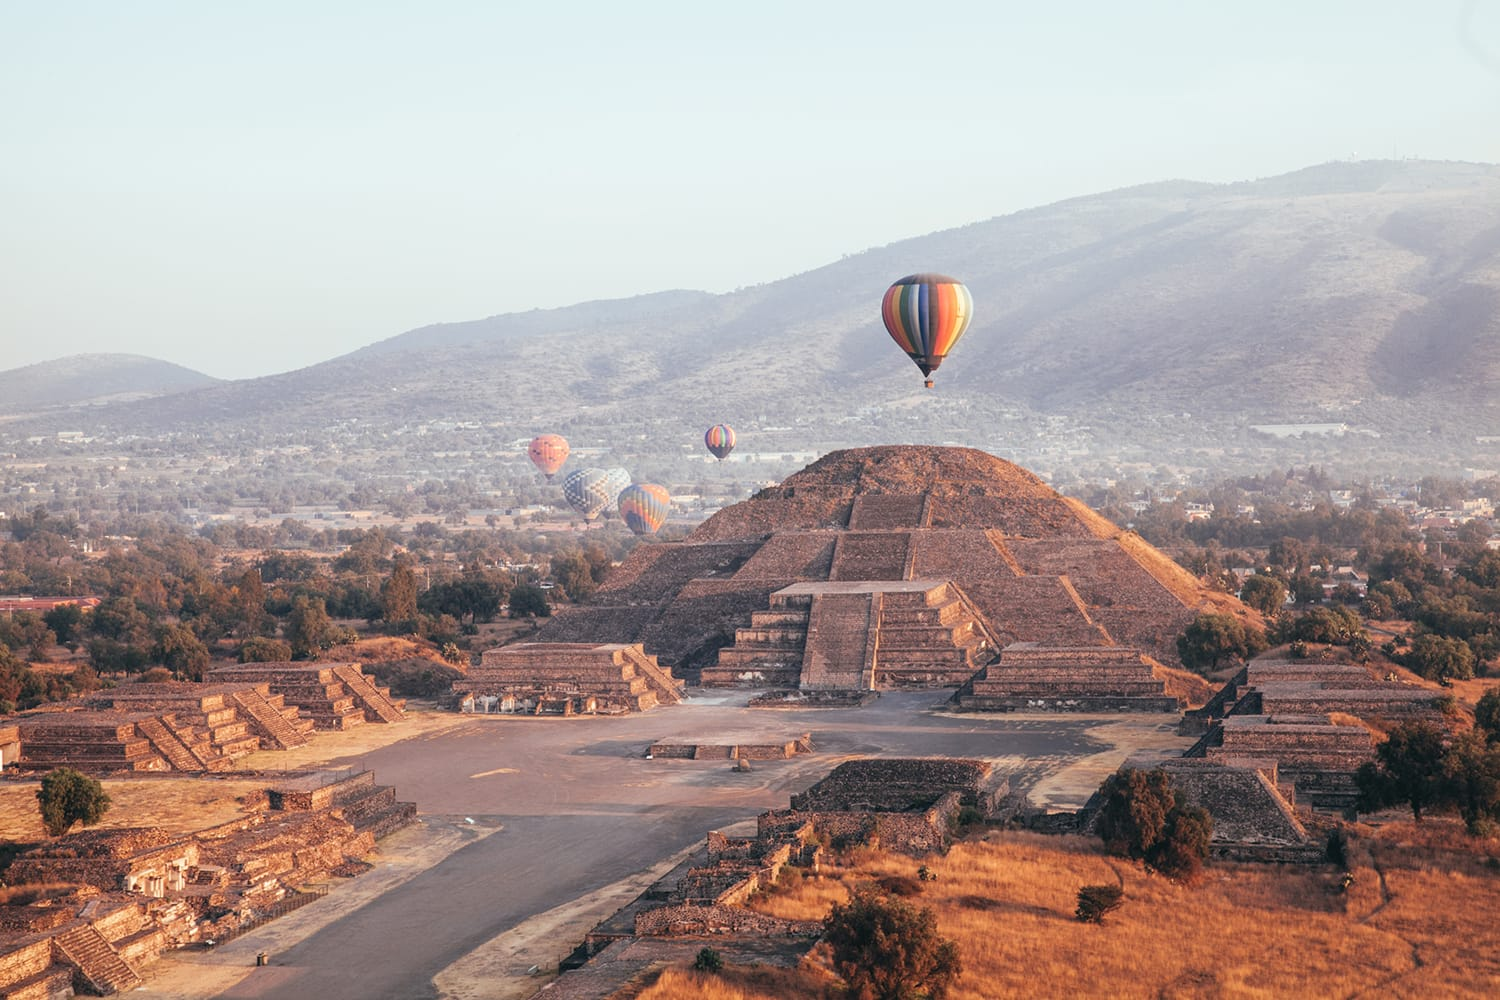 Hot Air Ballons over Teotihuacan, near Mexico City in Mexico